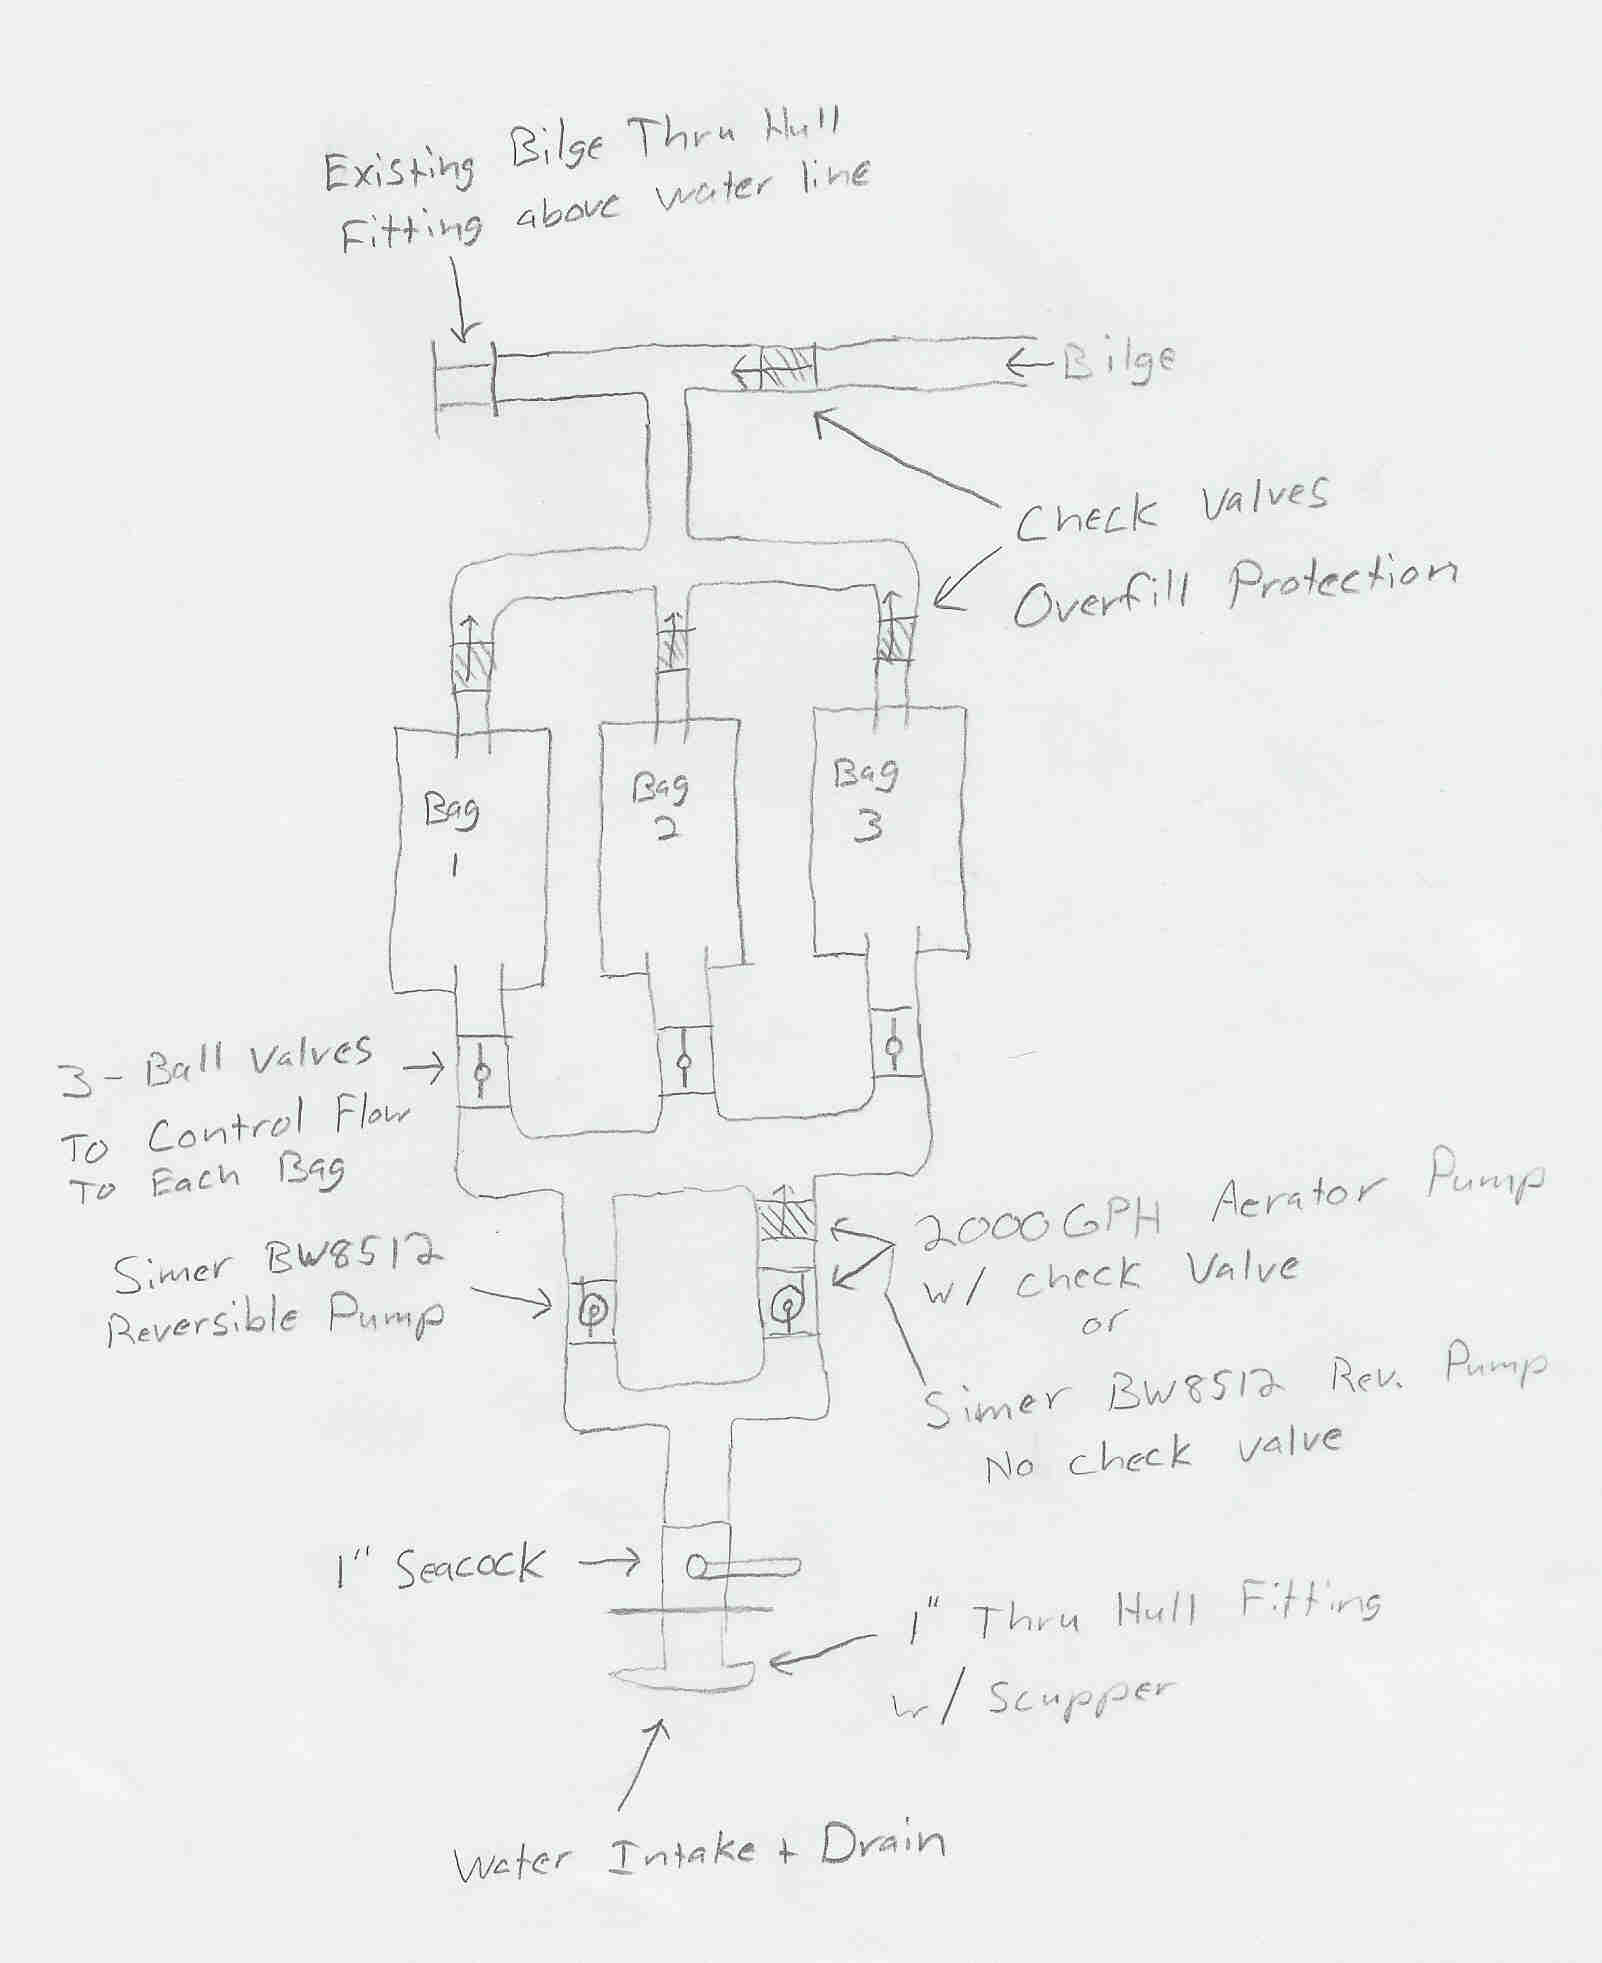 ballast_diagram wakeboarder custom ballast diagram & wiring questions? simer bw8512 simer pump wiring diagram at n-0.co